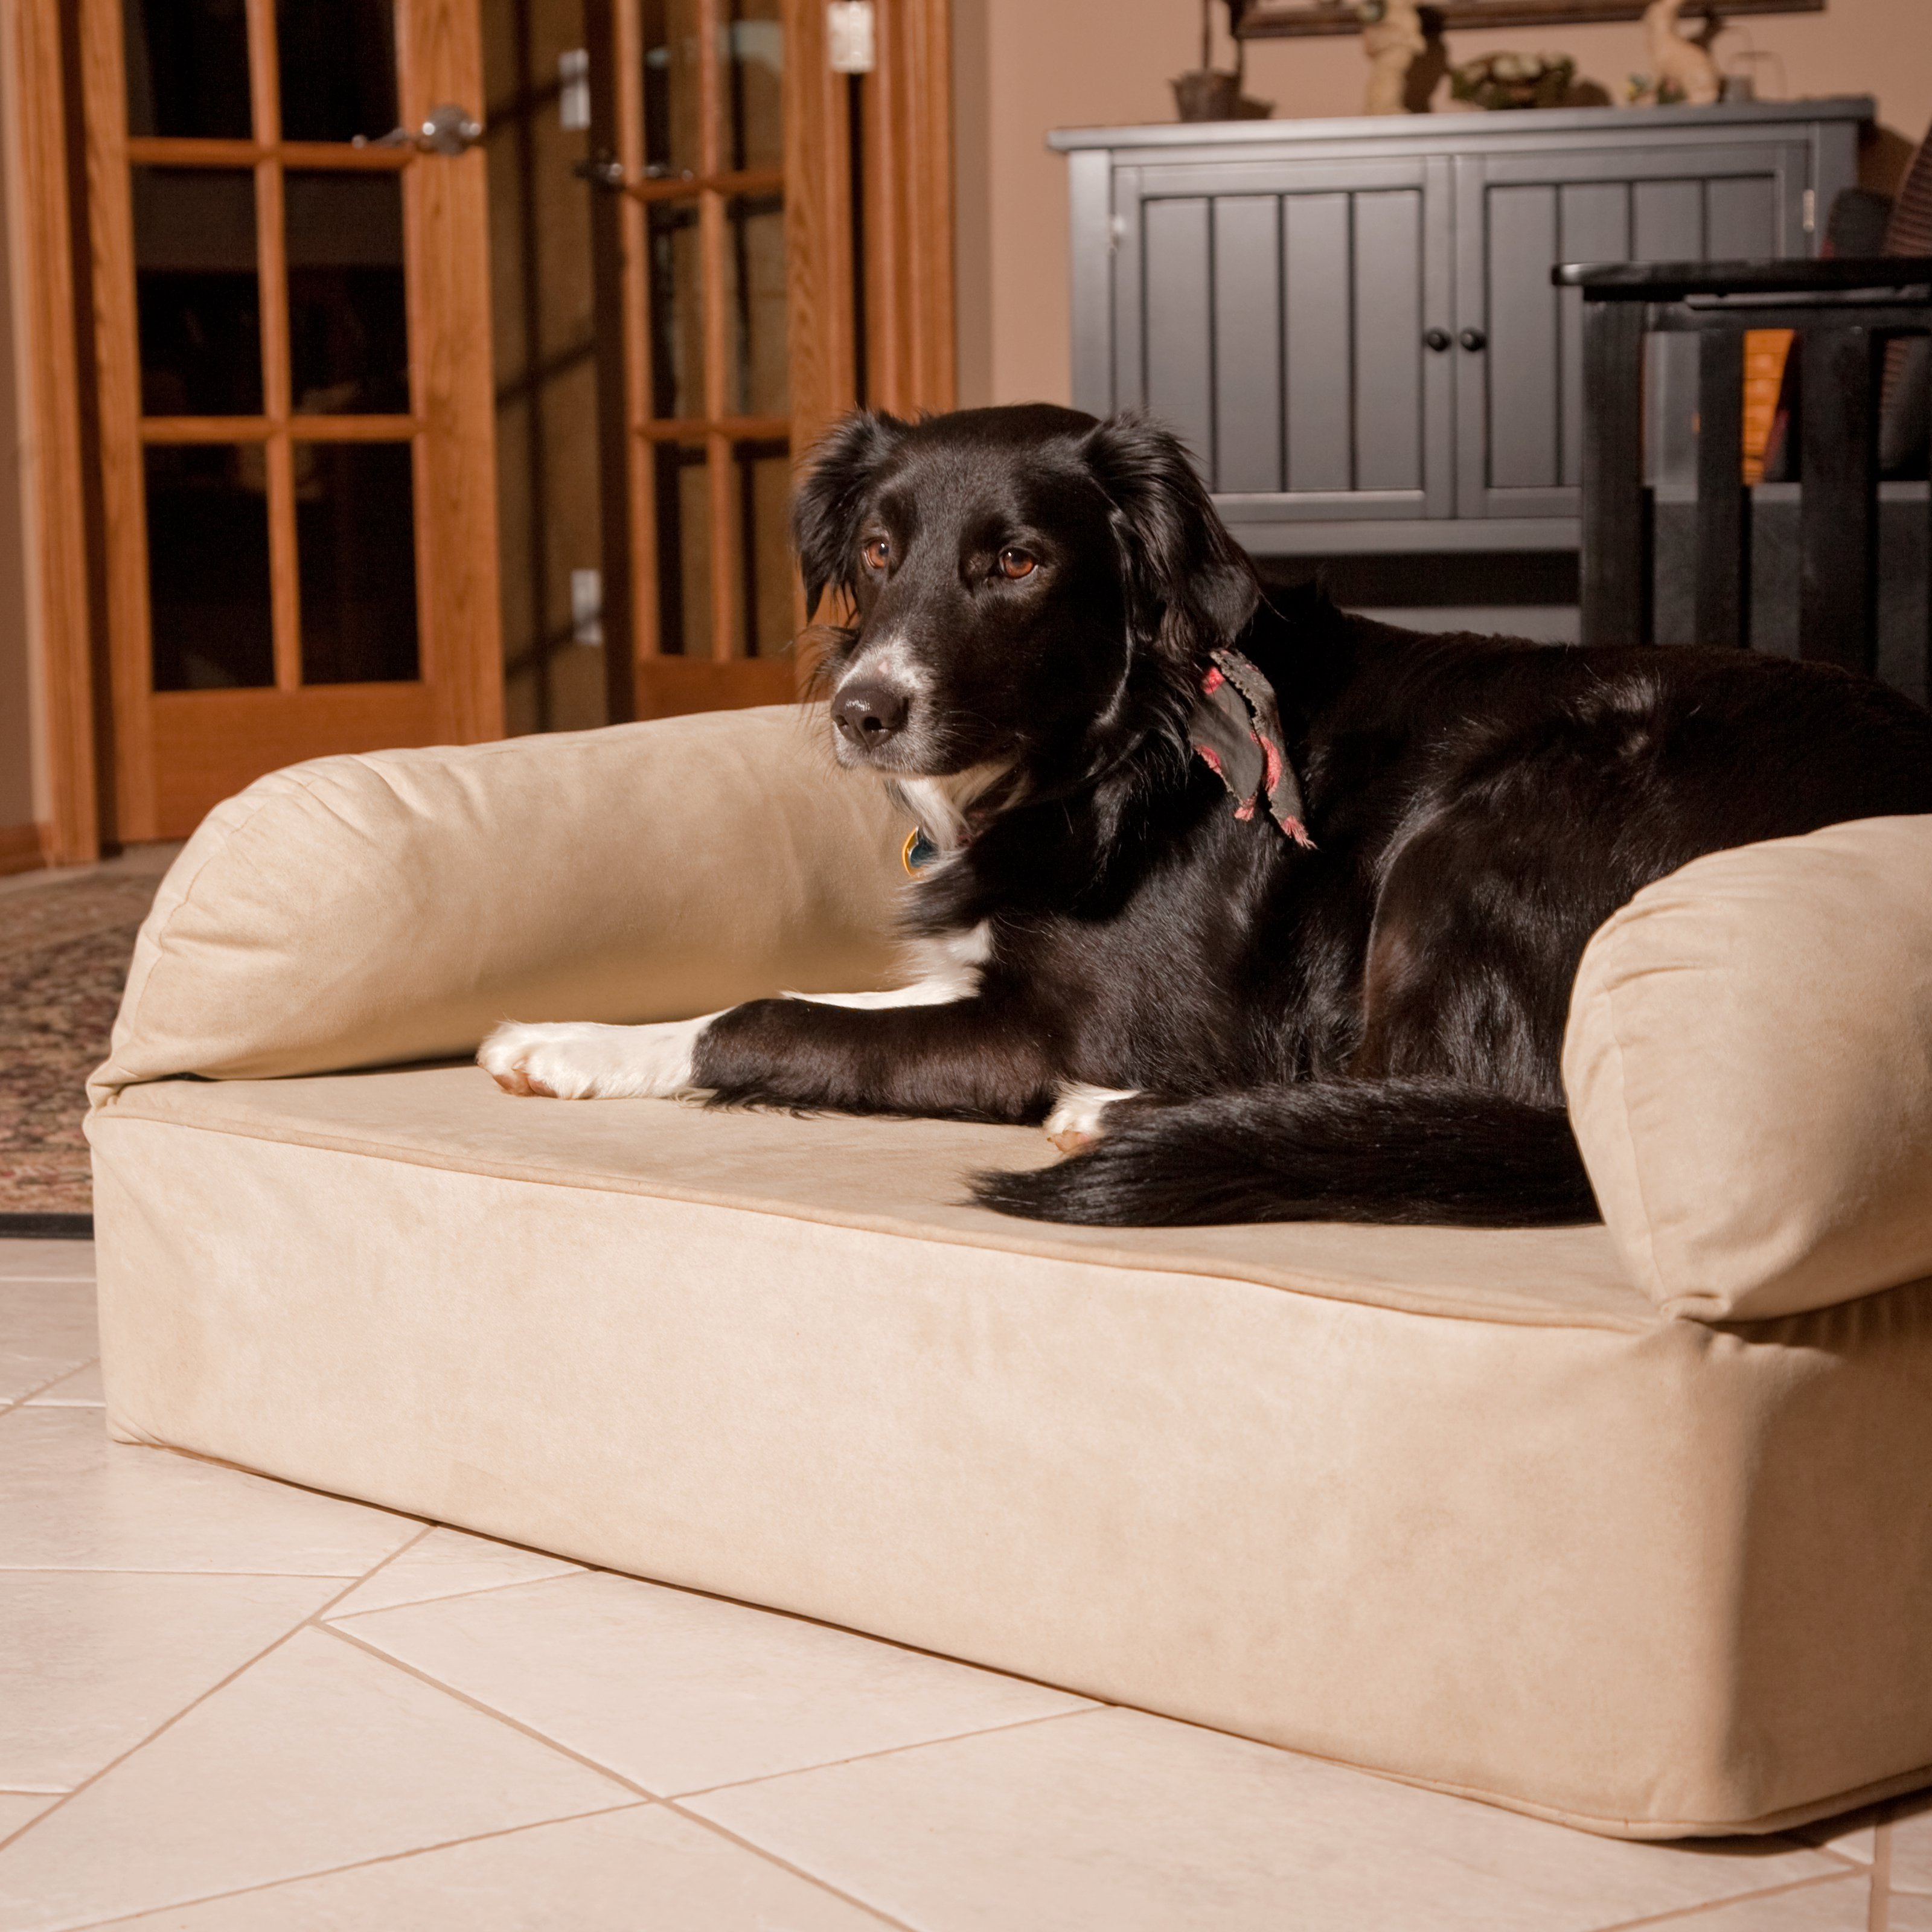 Snoozer Pet Dog Cat Puppy Indoor Comfortable Soft Quilted Luxury Regular Foam Sofa Sleeping Bed Large Peat